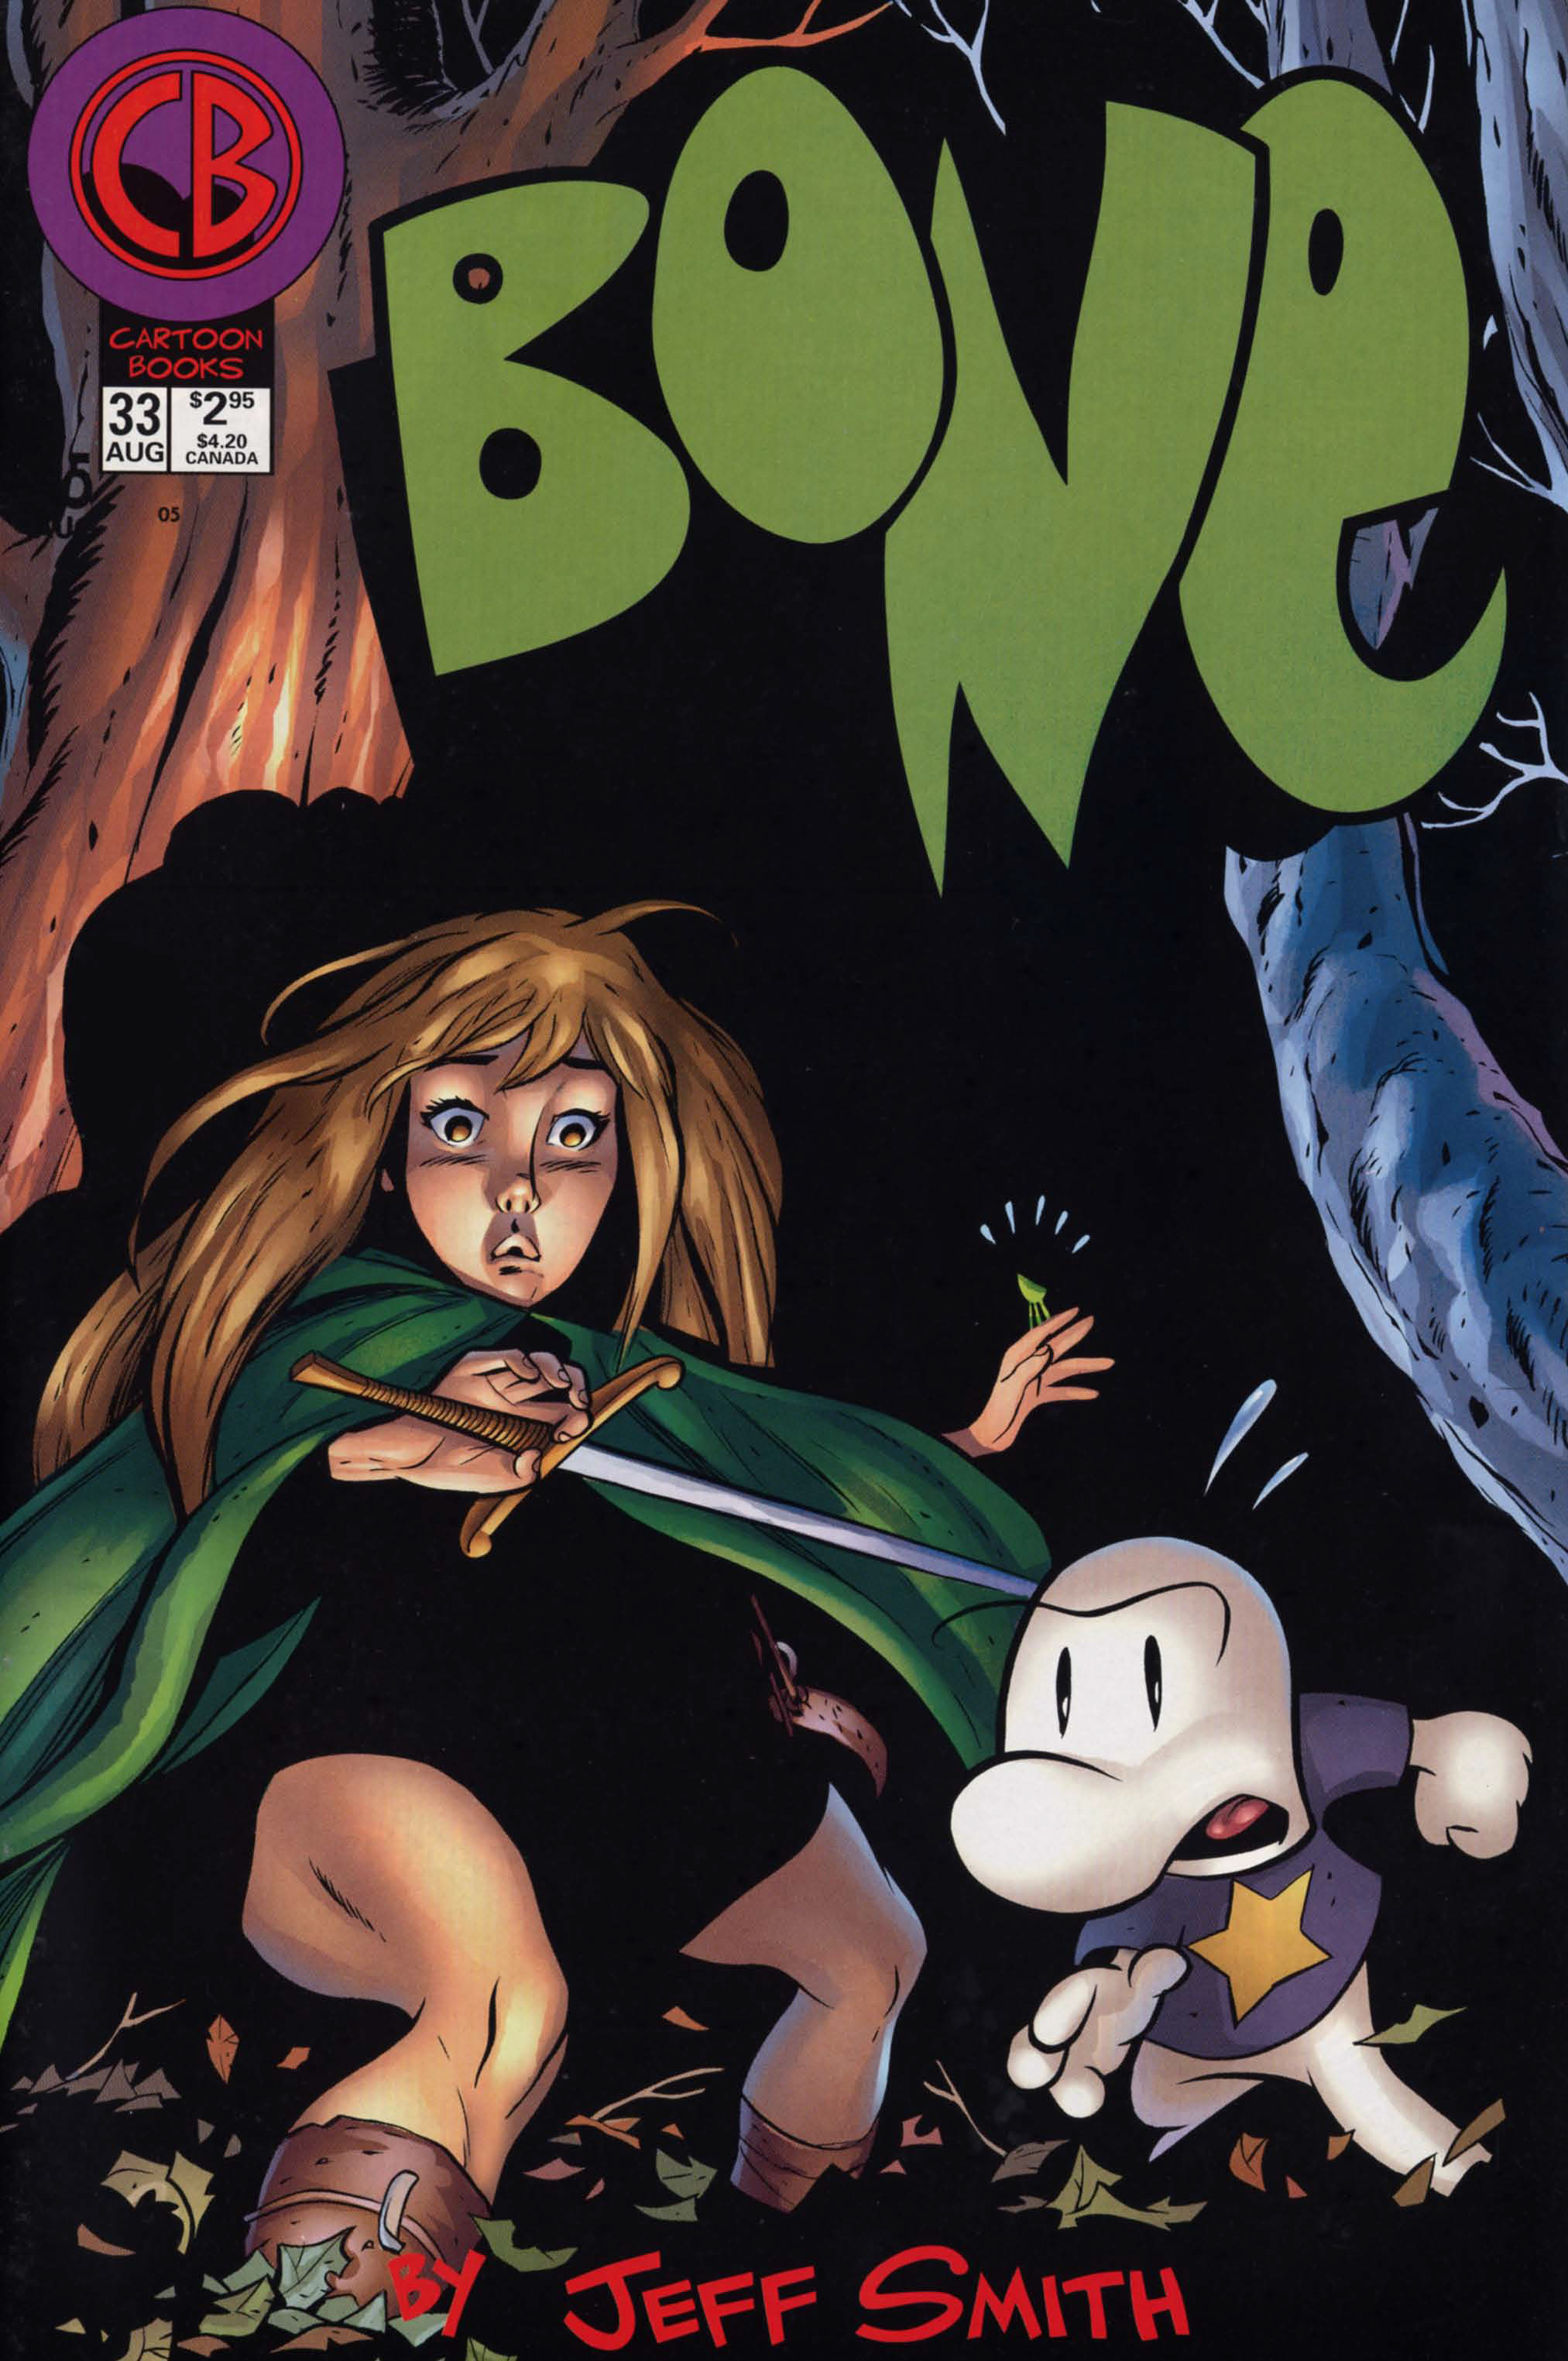 Bone 1991 Issue 33